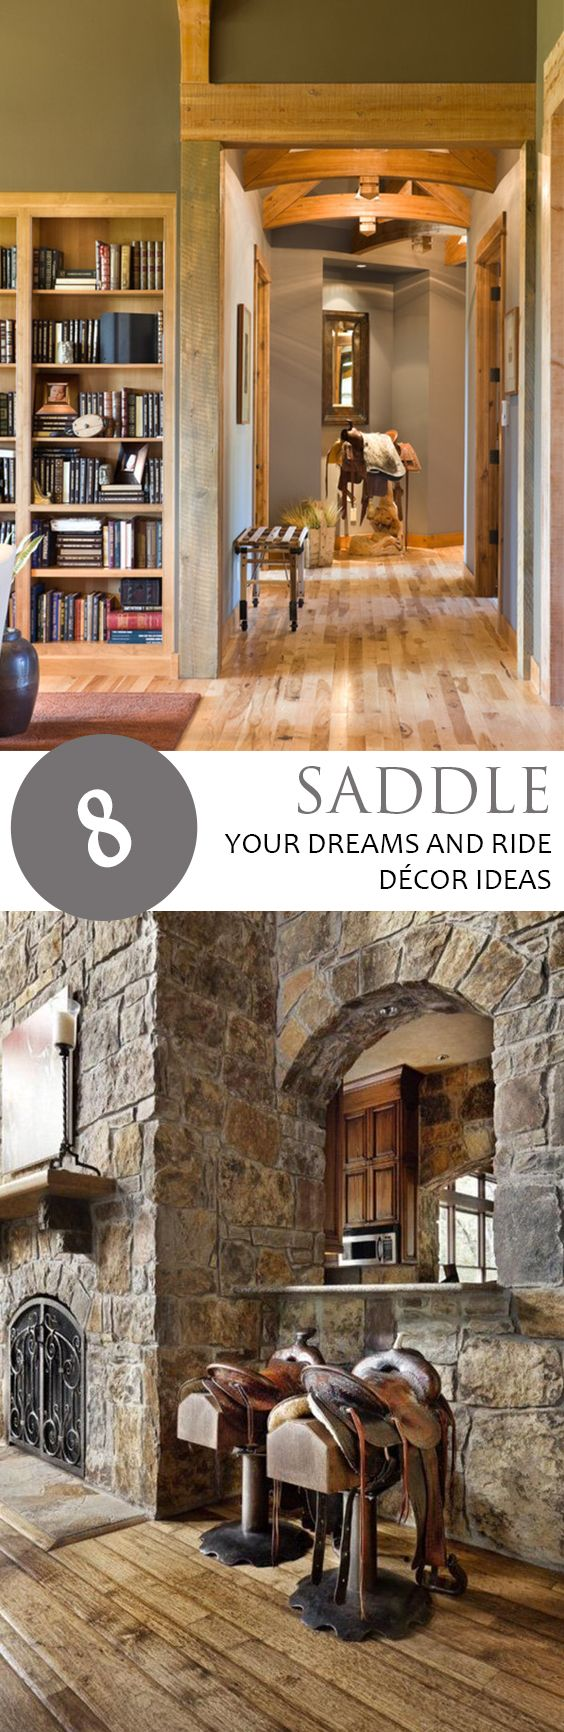 8 Saddle Your Dreams and Ride Dcor